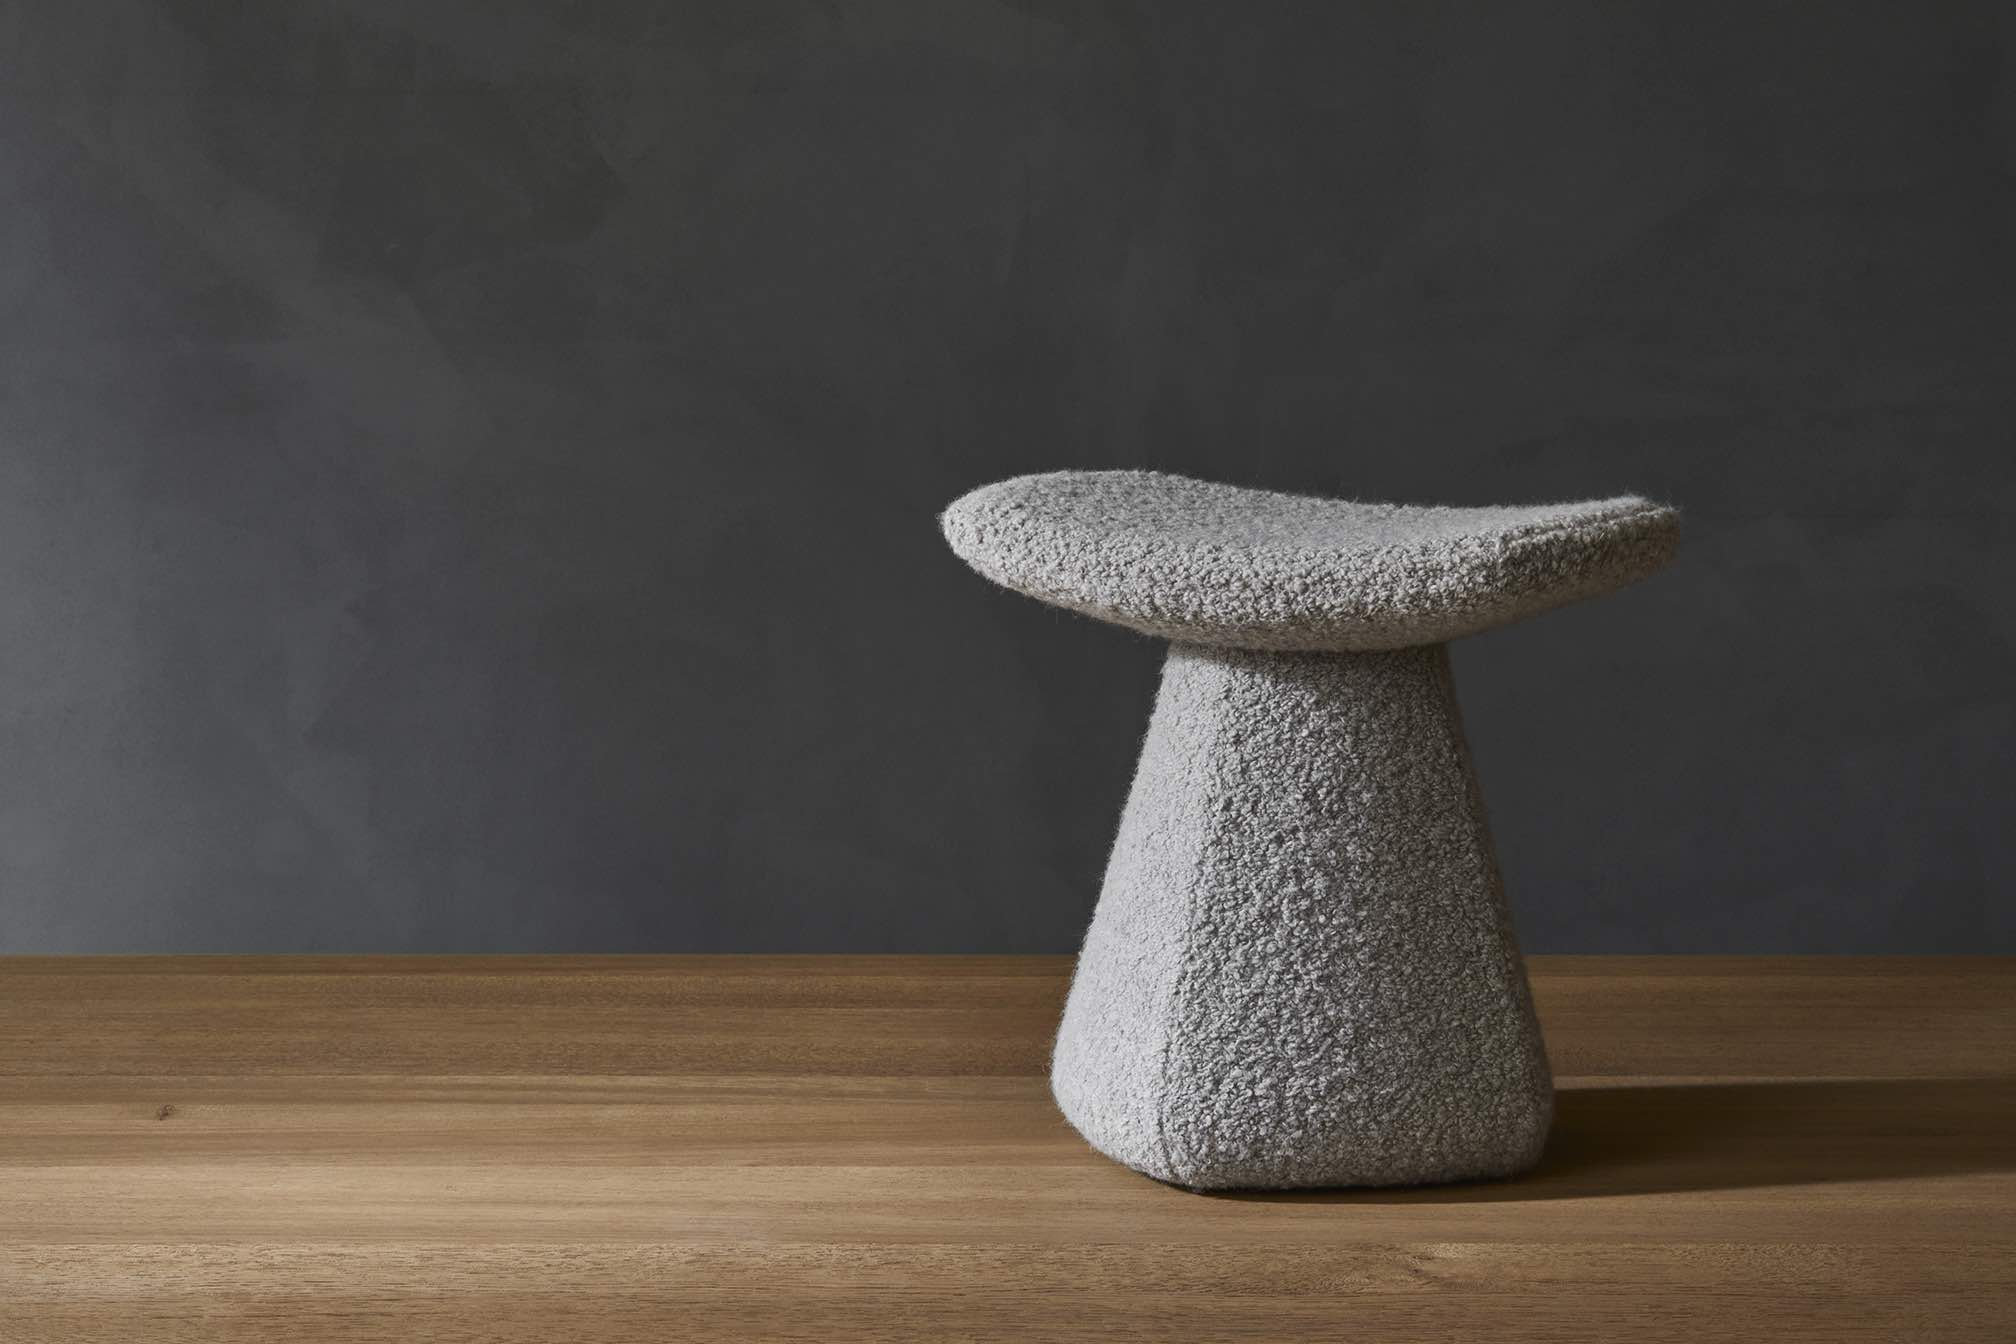 DAM-STOOL-UPHOLSTERED-WOOL-GREY-DESIGN-CHRISTOPHE-DELCOURT-COLLECTION-PARTICULIERE